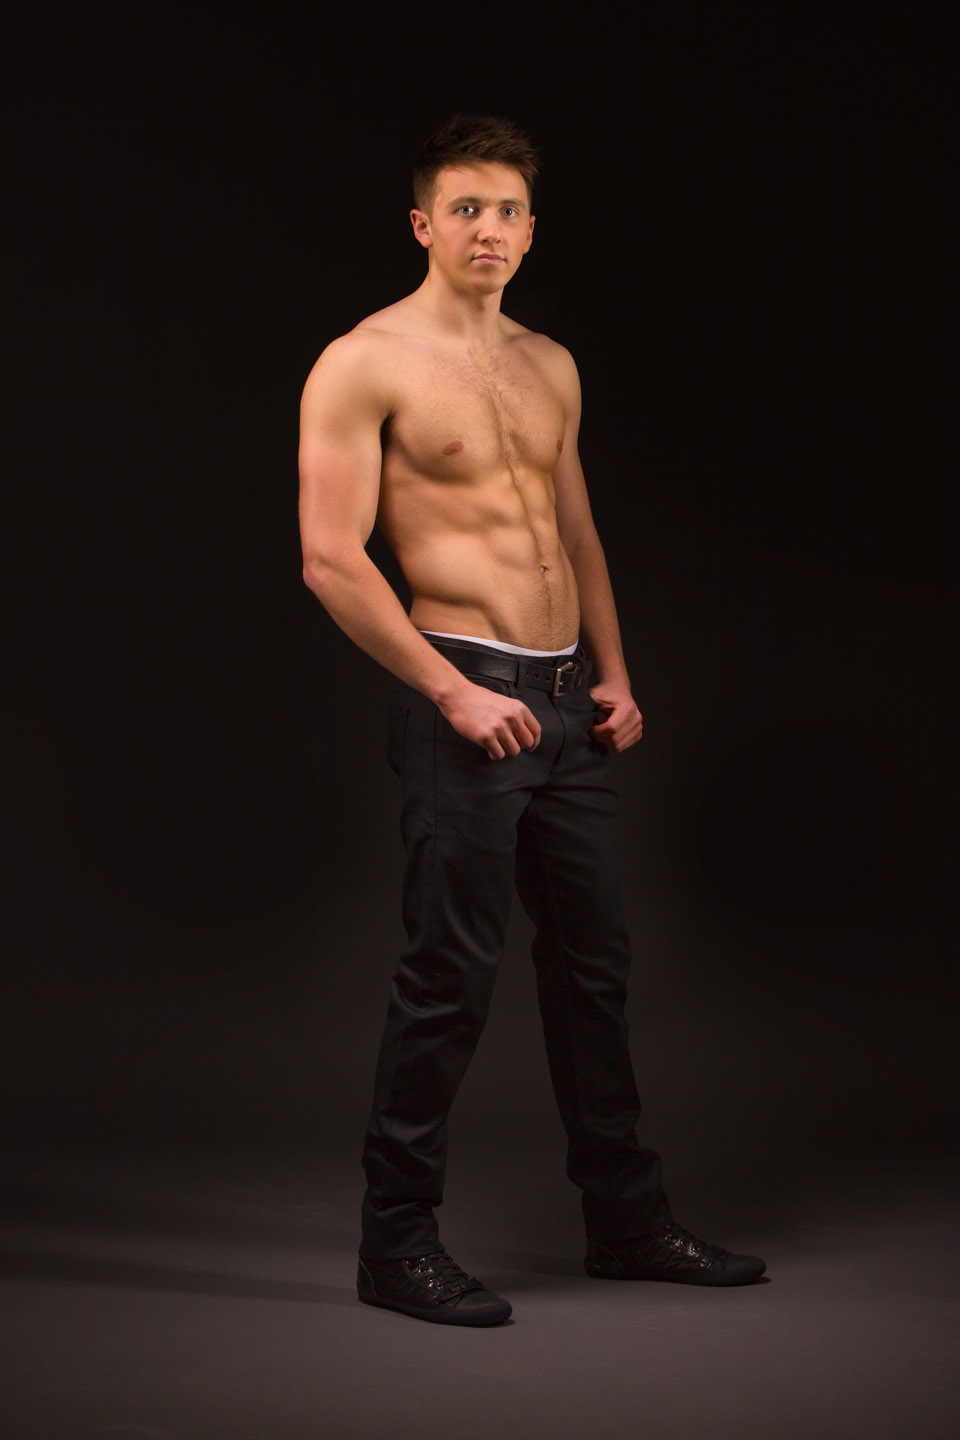 Full length shirtless male model photo